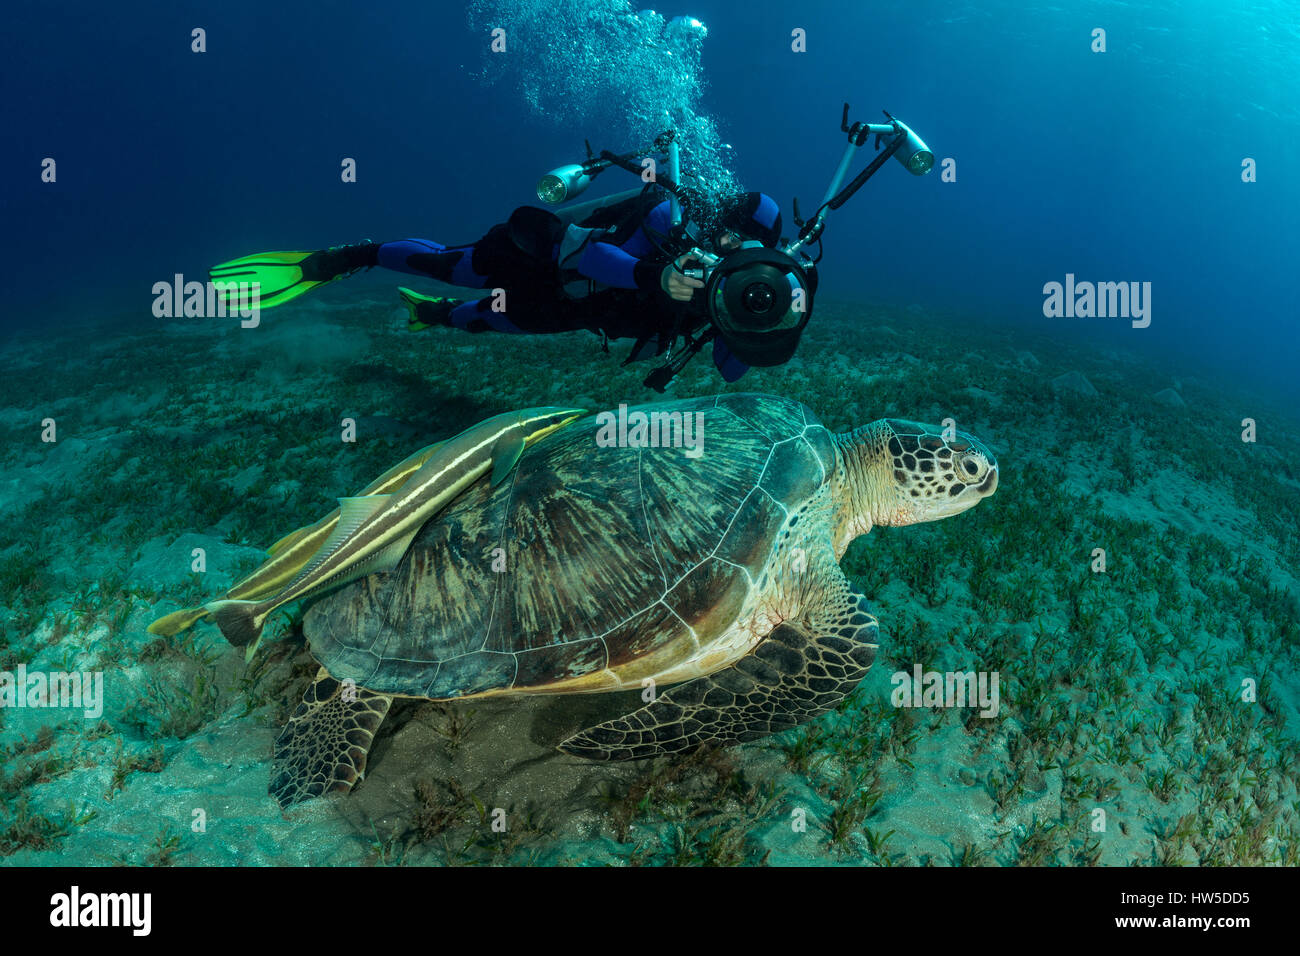 Green Sea Turtle and Diver, Chelonia mydas, Marsa Alam, Red Sea, Egypt - Stock Image